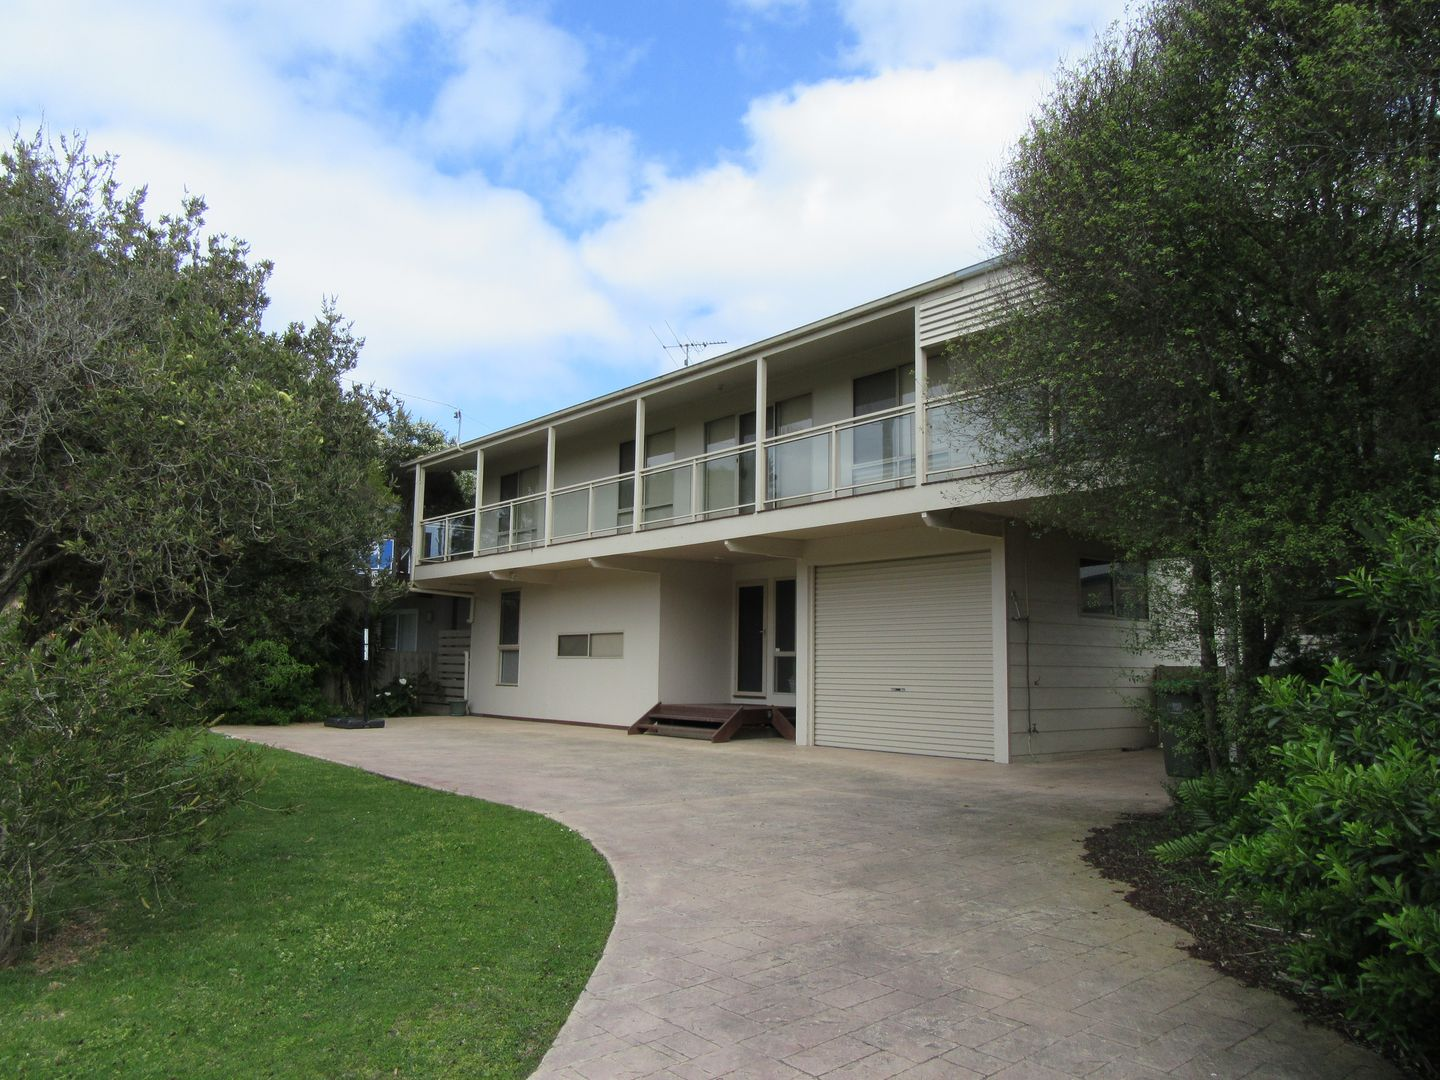 70 The Esplanade Cape Woolamai VIC 3925 Image 1